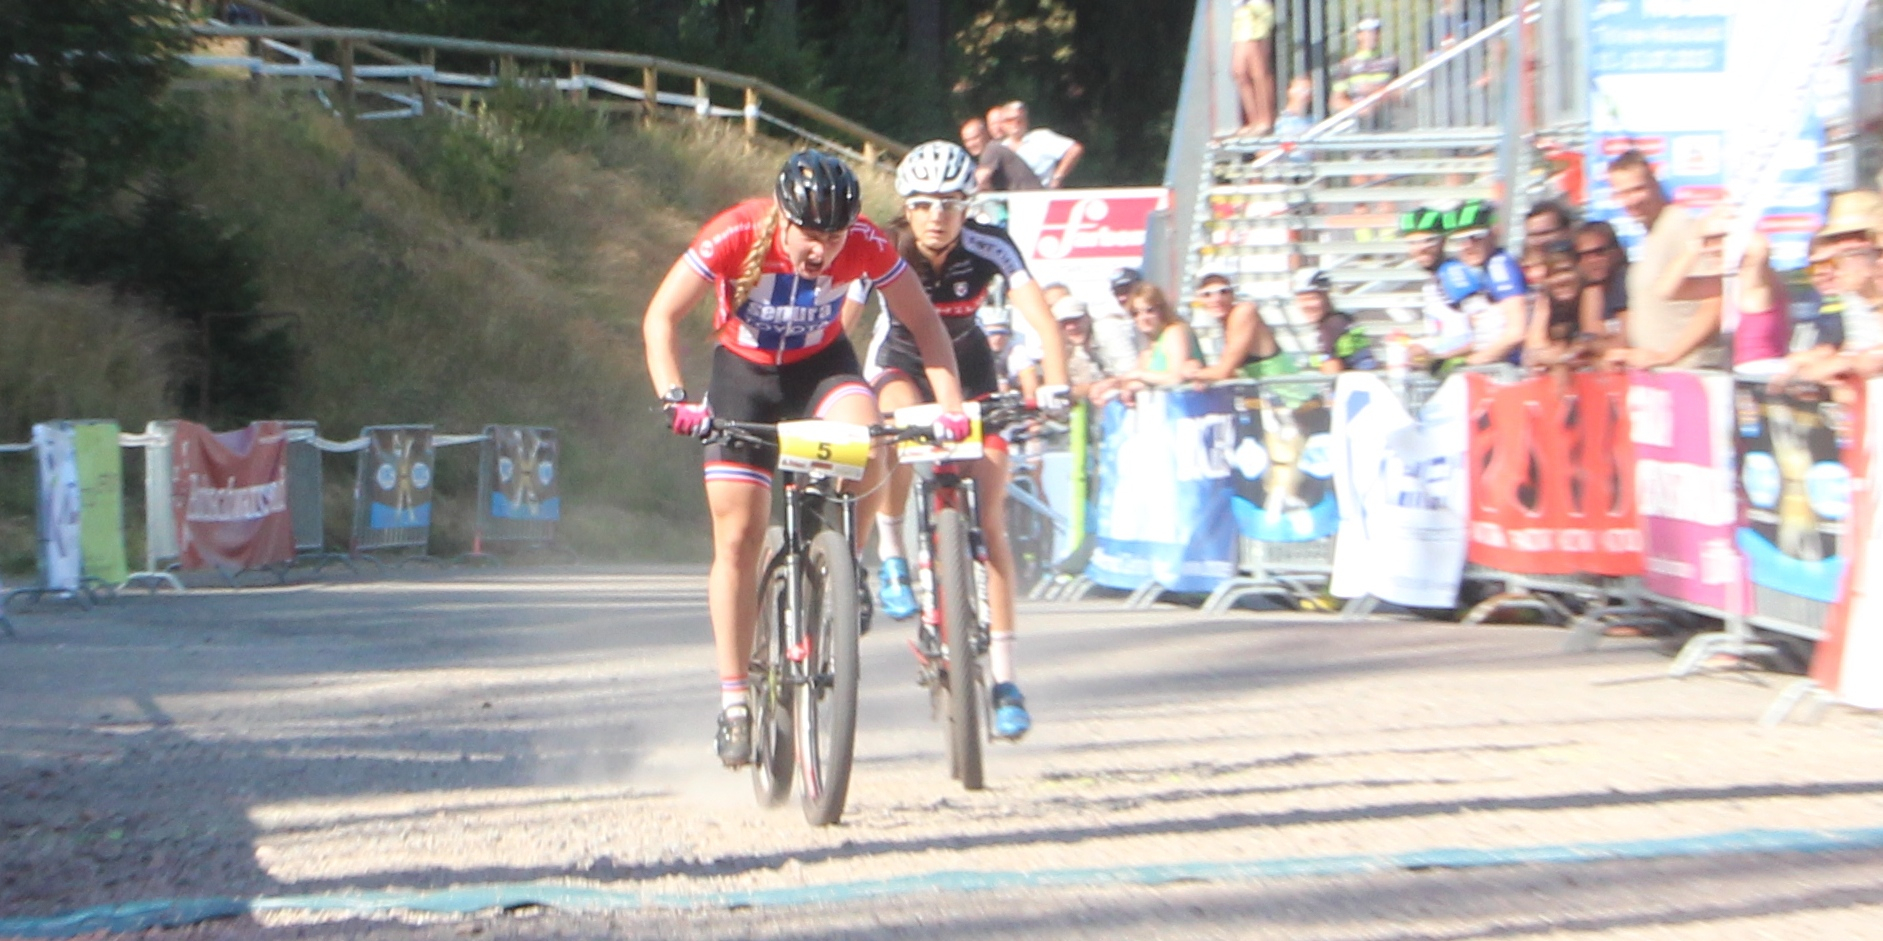 Jacobsen_Rieder_finishBL15_Titisee-Neustadt_XCE_by-Goller